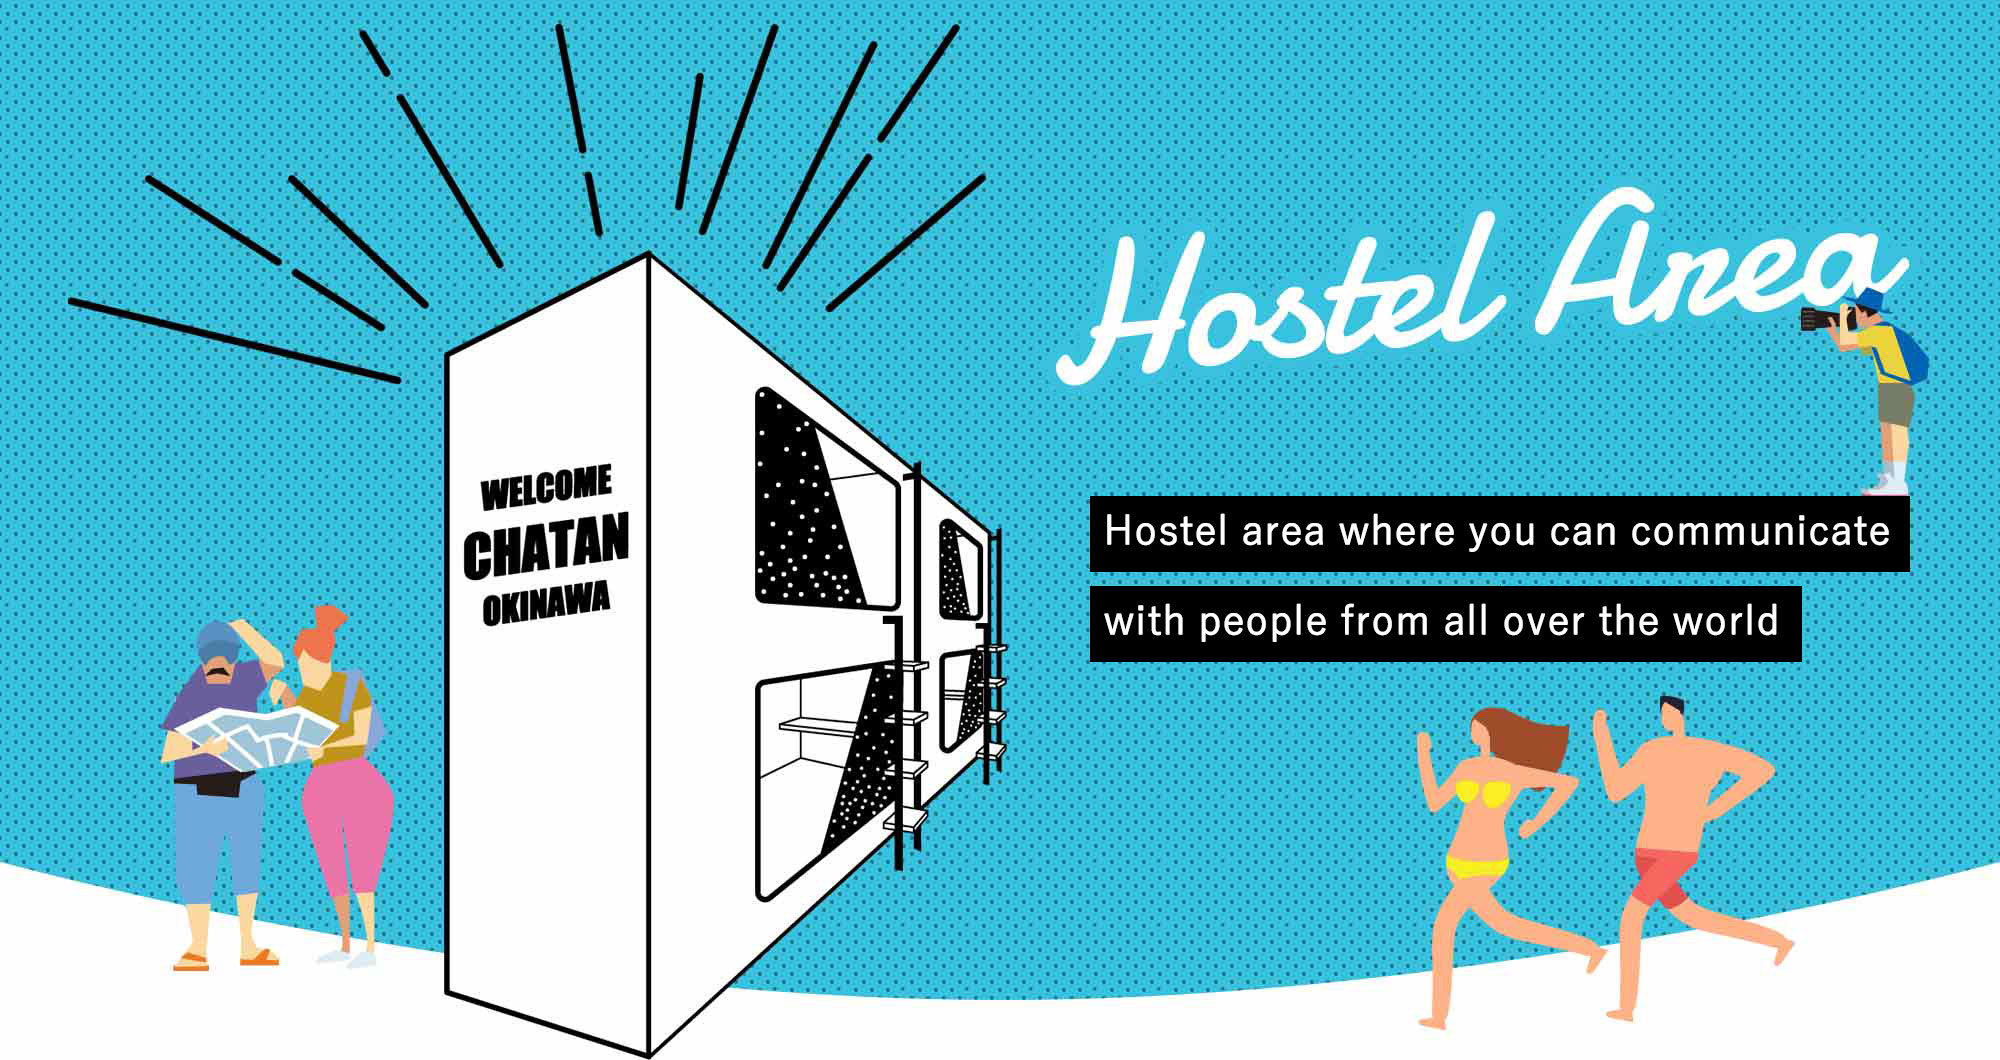 Hostel area where you can communicate with people from all over the world